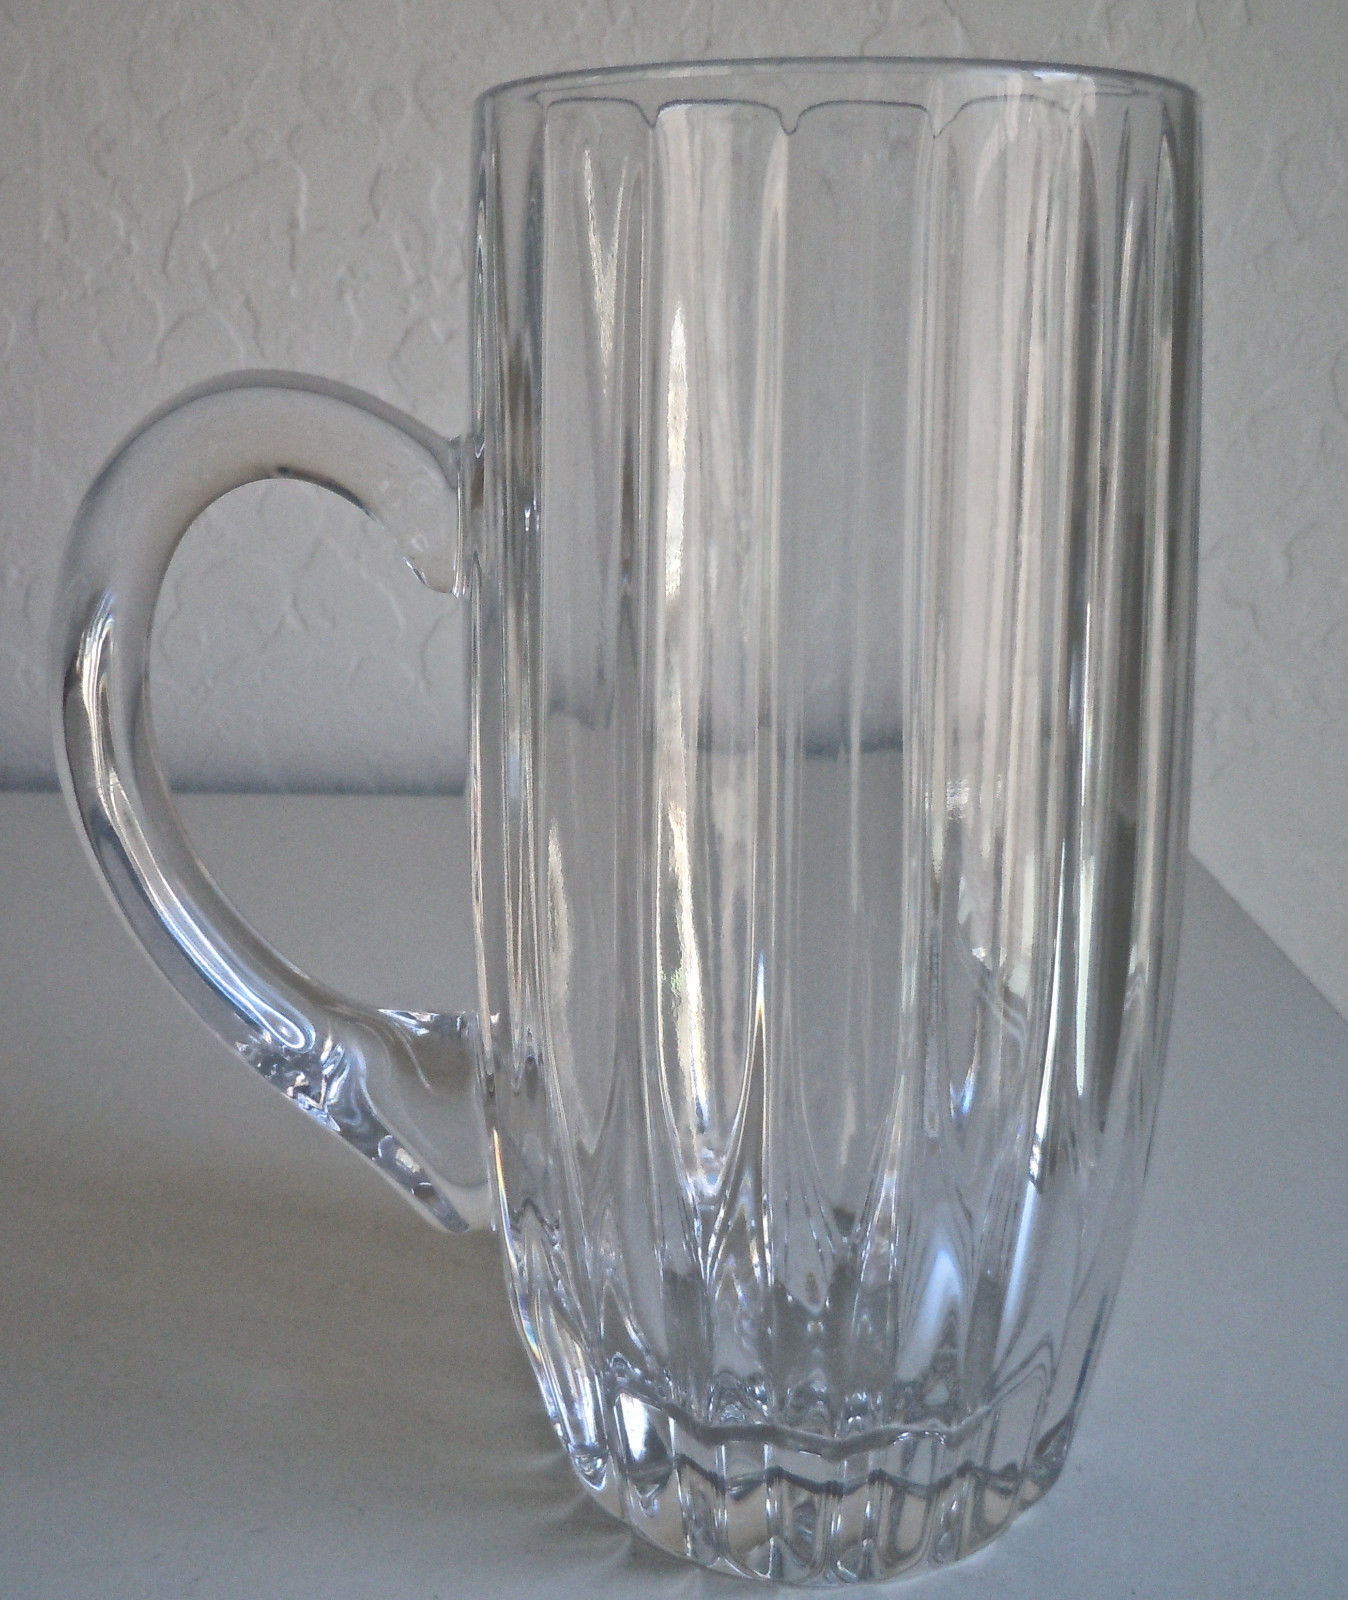 Primary image for Mikasa Park Lane Beer Stein